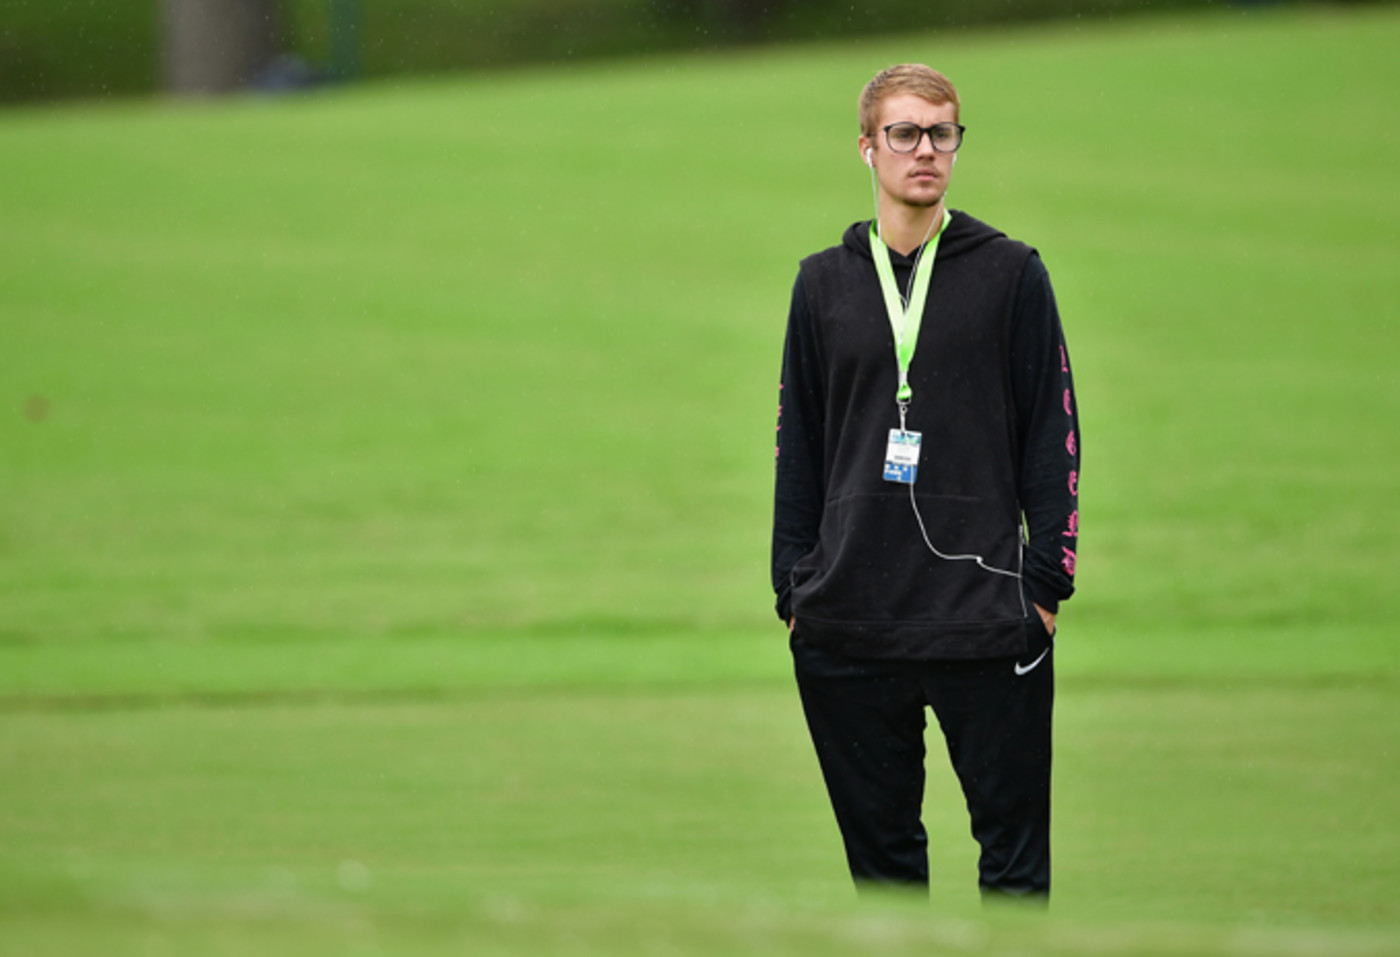 Justin Bieber attends a practice round prior to the 2017 PGA Championship